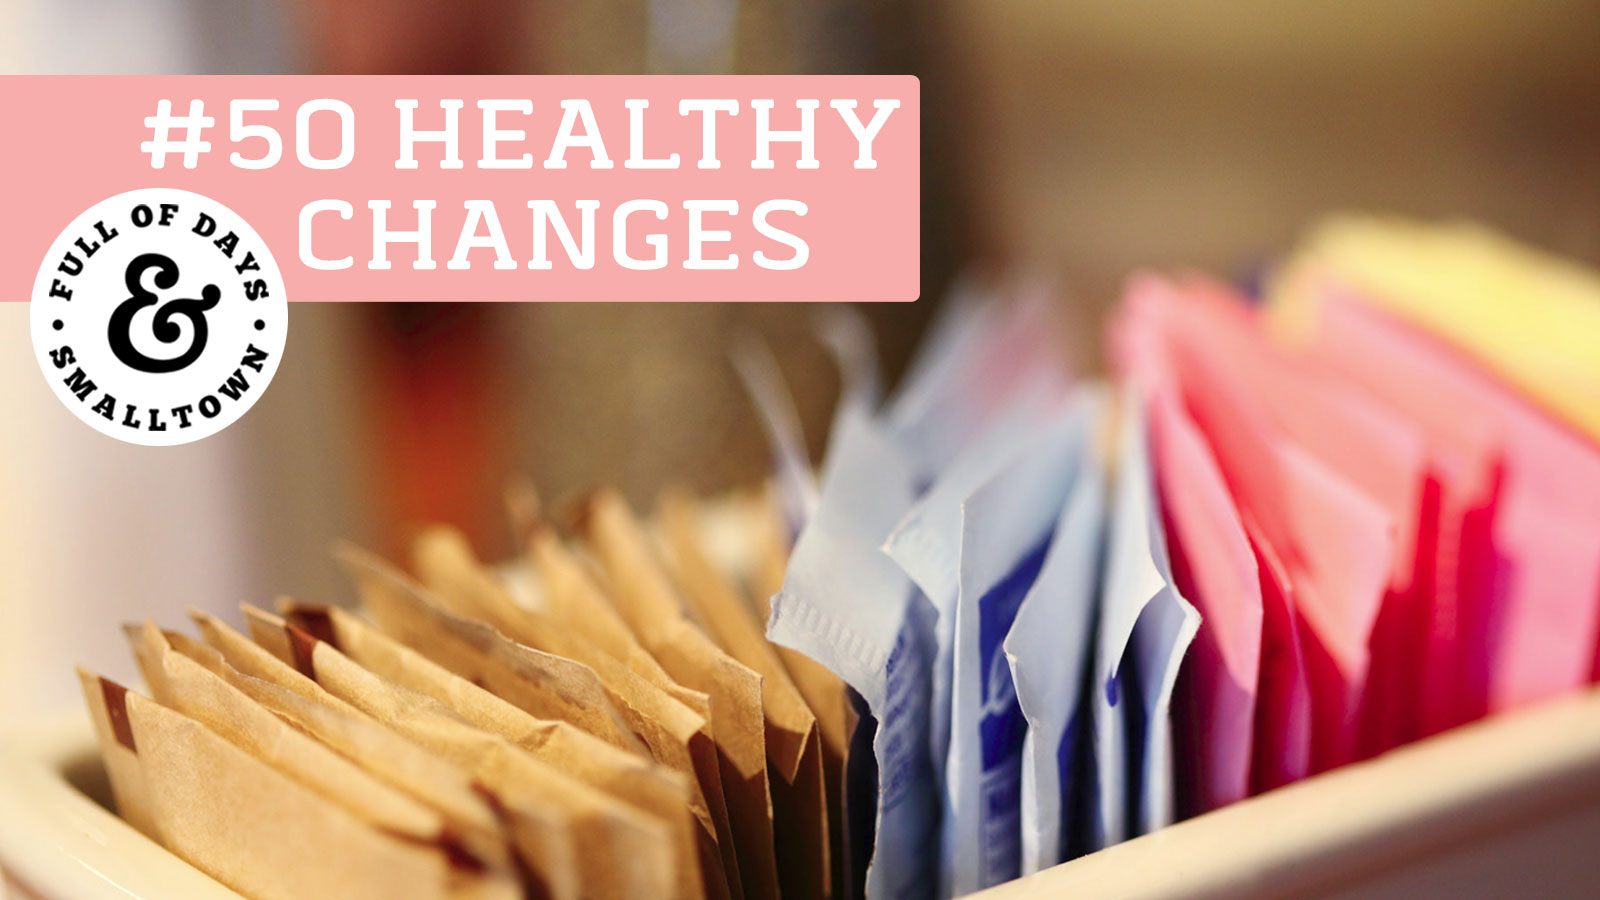 Healthy Changes 50 - Sugar Differences